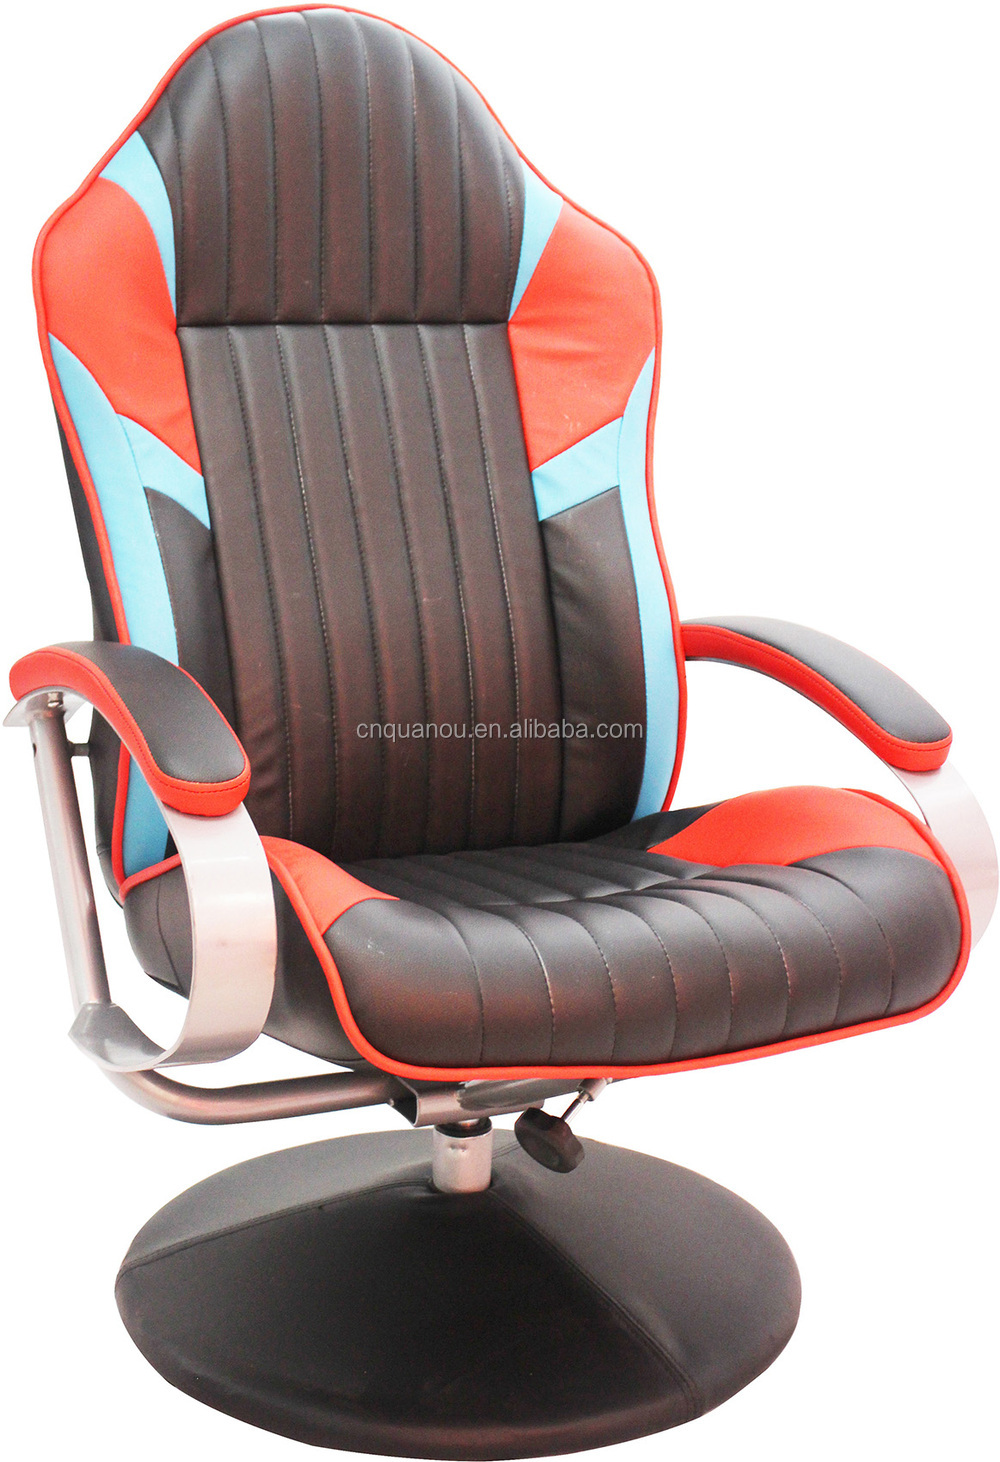 lazy boy lift chair parts high wood workwell racing recliner with ottoman office car gaming - buy seat ...